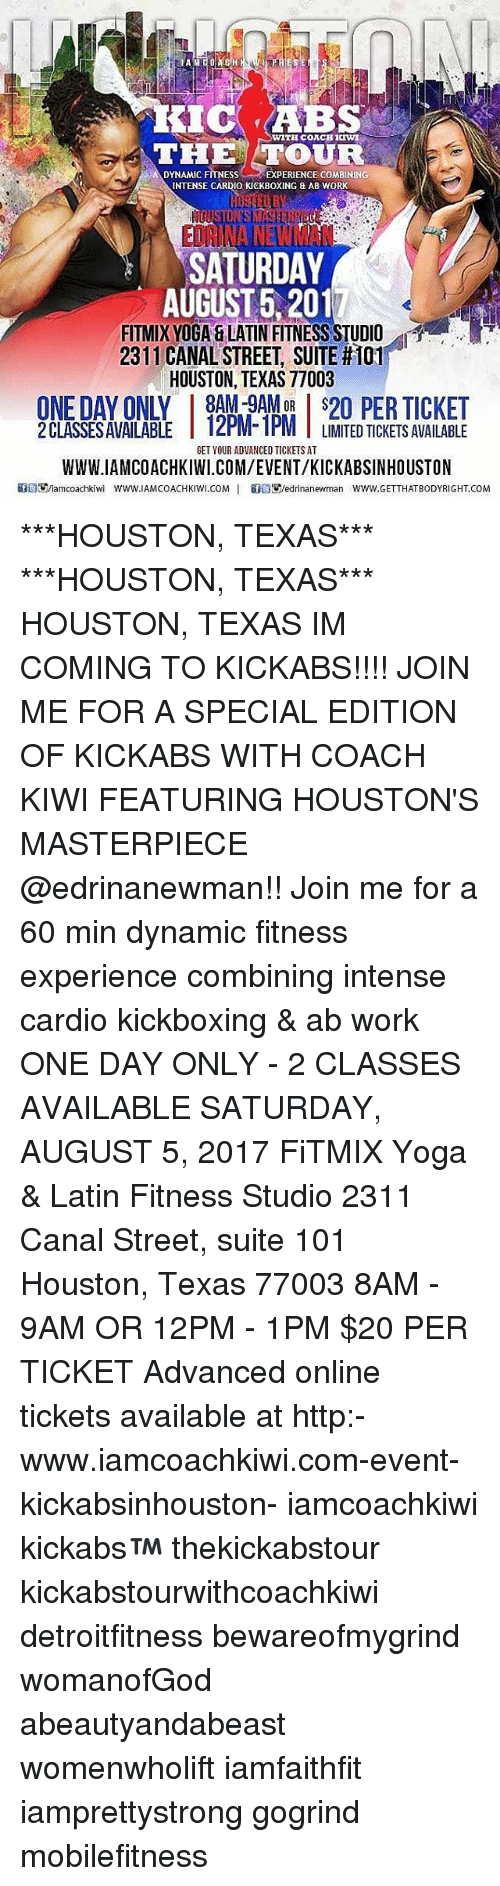 Work Saturday: KIC ABS  THETOUR  DYNAMIC FITNESSEXPERIENCE COMBININ  INTENSE CARDIO KICKBOXING & AB WORK  SATURDAY  AUGUST 5,2017  FITMIXYOGA & LATIN FITNESS STUDIO  231 1 CANAL STREET, SUITE #101  HOUSTON, TEXAS 77003  ONE DAY ONLY8AM-9AM TICKET  2 CLASSESAVAILABLE 12PM-1PM T LIMITED TICKETS AVAILABLE  IZPIM IPMLIMITED TICKETS AVAILABE  GET YOUR ADVANCED TICKETS AT  WWW.IAMCOACHKIWI.COM/EVENT/KICKABSINHOUSTON  GoE9iamcoachkiwi WWW.IAMCOACHKIWI.COM   雏目す/edrinanewman www.GETTHATBODYRIGHT.COM ***HOUSTON, TEXAS*** ***HOUSTON, TEXAS*** HOUSTON, TEXAS IM COMING TO KICKABS!!!! JOIN ME FOR A SPECIAL EDITION OF KICKABS WITH COACH KIWI FEATURING HOUSTON'S MASTERPIECE @edrinanewman!! Join me for a 60 min dynamic fitness experience combining intense cardio kickboxing & ab work ONE DAY ONLY - 2 CLASSES AVAILABLE SATURDAY, AUGUST 5, 2017 FiTMIX Yoga & Latin Fitness Studio 2311 Canal Street, suite 101 Houston, Texas 77003 8AM - 9AM OR 12PM - 1PM $20 PER TICKET Advanced online tickets available at http:-www.iamcoachkiwi.com-event-kickabsinhouston- iamcoachkiwi kickabs™ thekickabstour kickabstourwithcoachkiwi detroitfitness bewareofmygrind womanofGod abeautyandabeast womenwholift iamfaithfit iamprettystrong gogrind mobilefitness